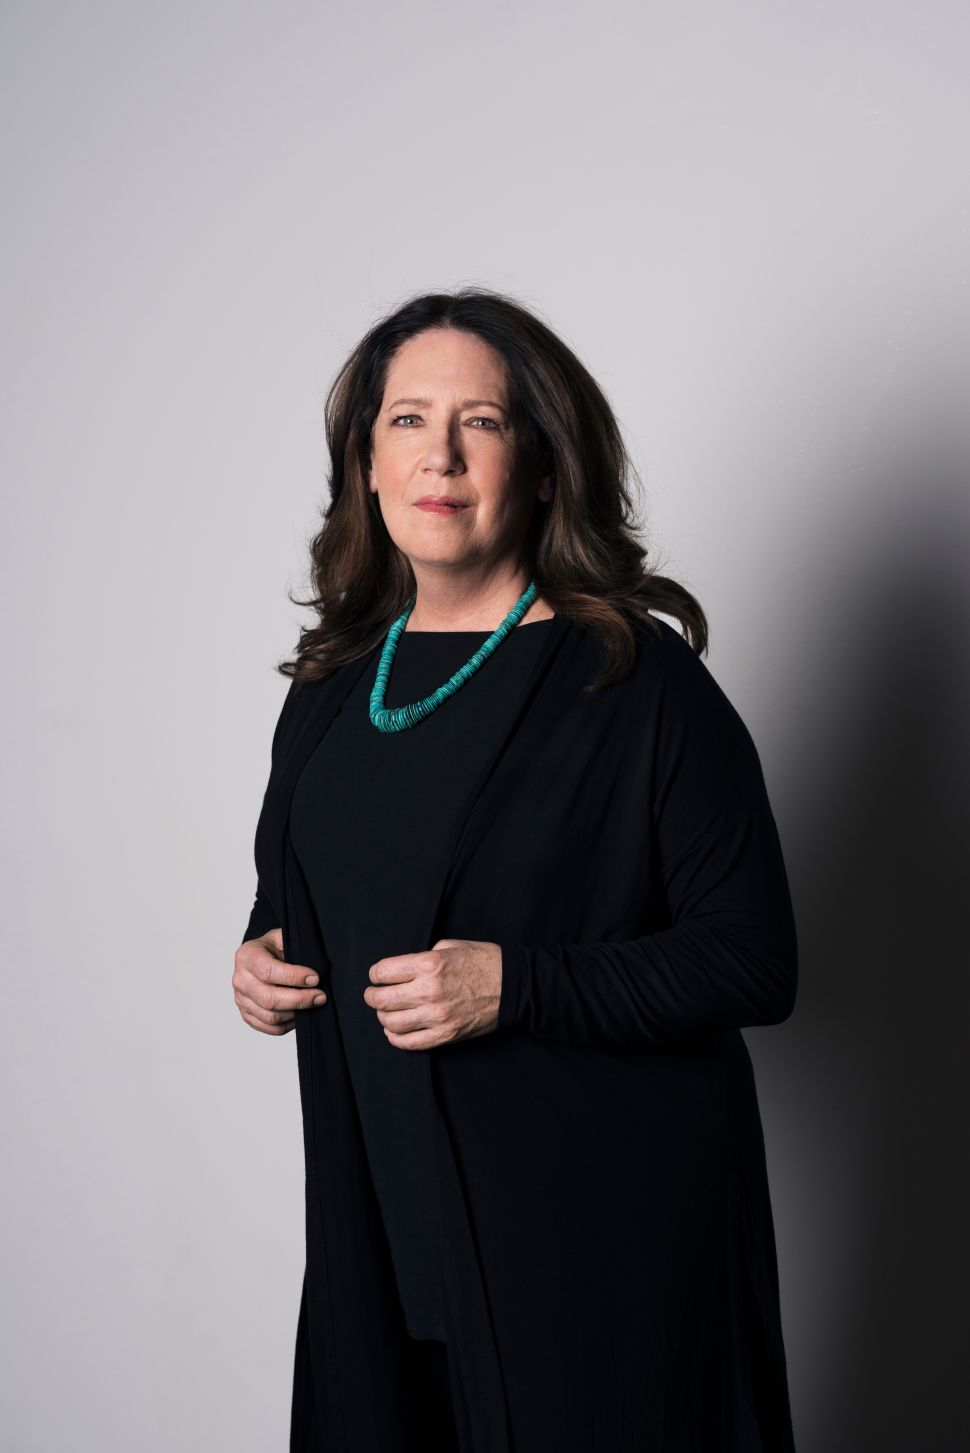 'Handmaid's Tale' Actor Ann Dowd Swears She's Nice to Women and Children in Real Life